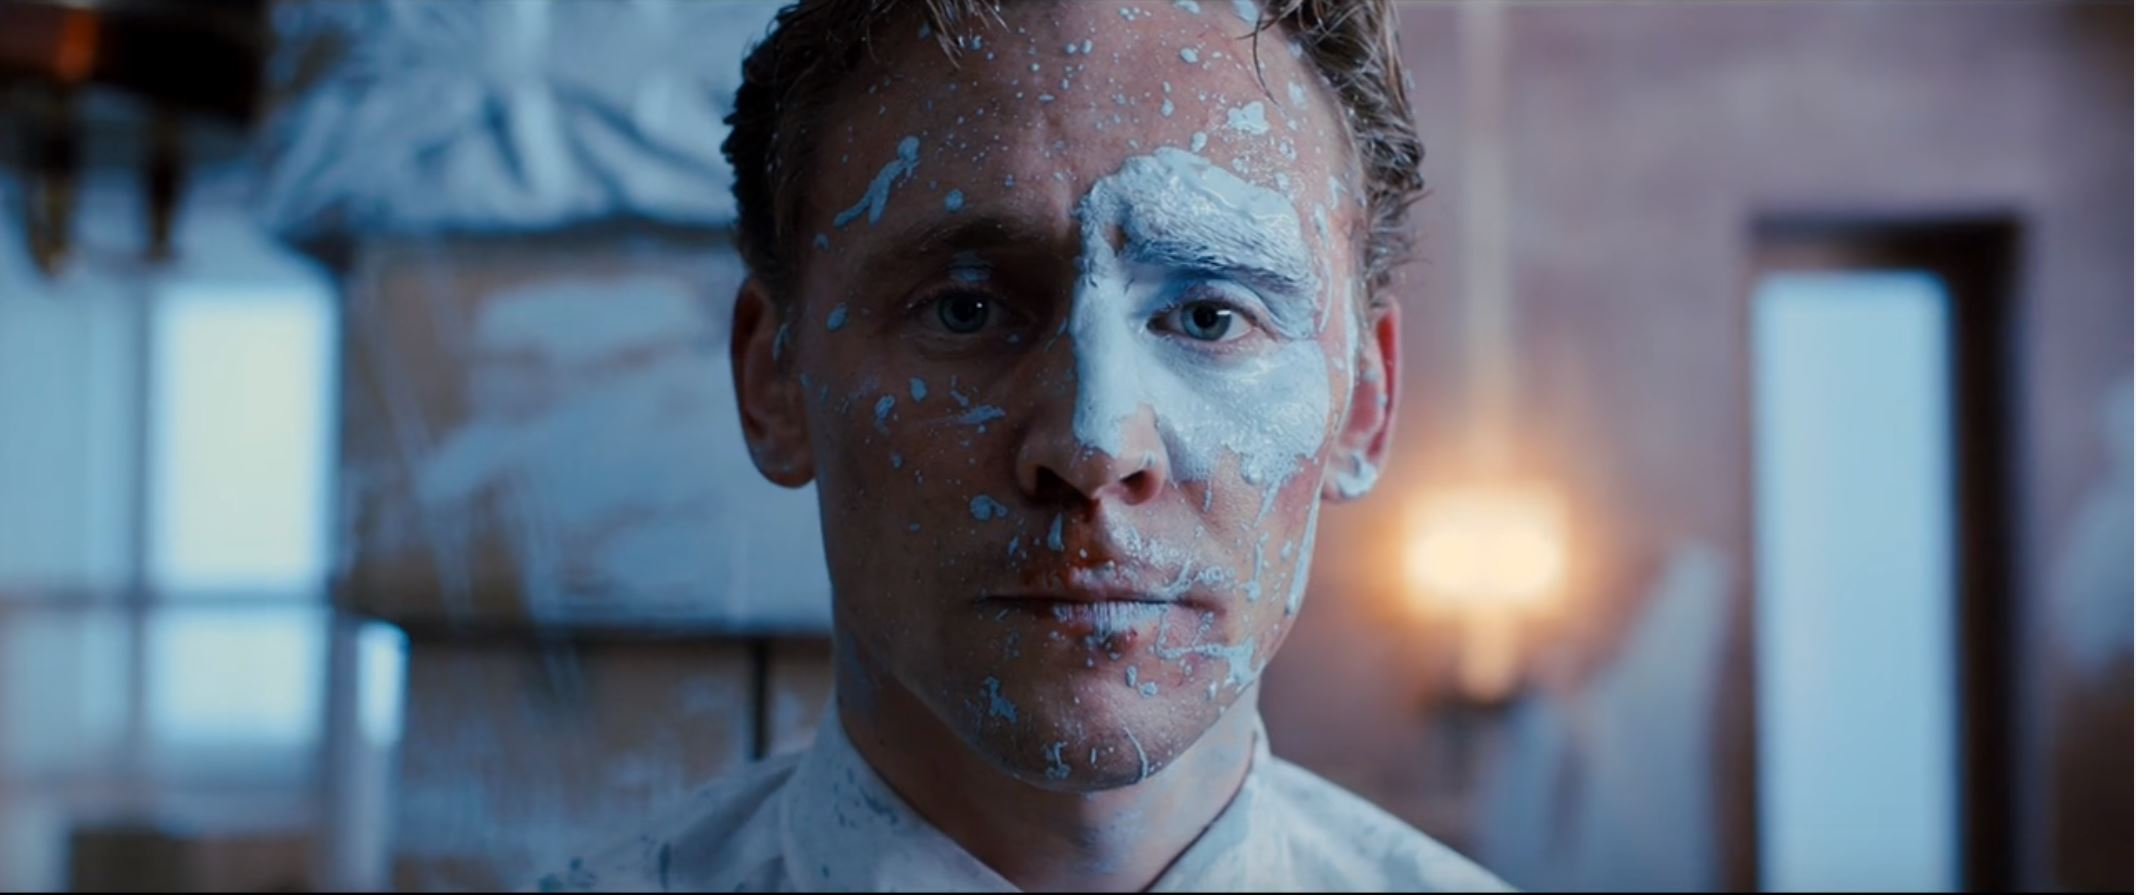 Watch The Strange New Trailer With Tom Hiddleston In HIGH-RISE